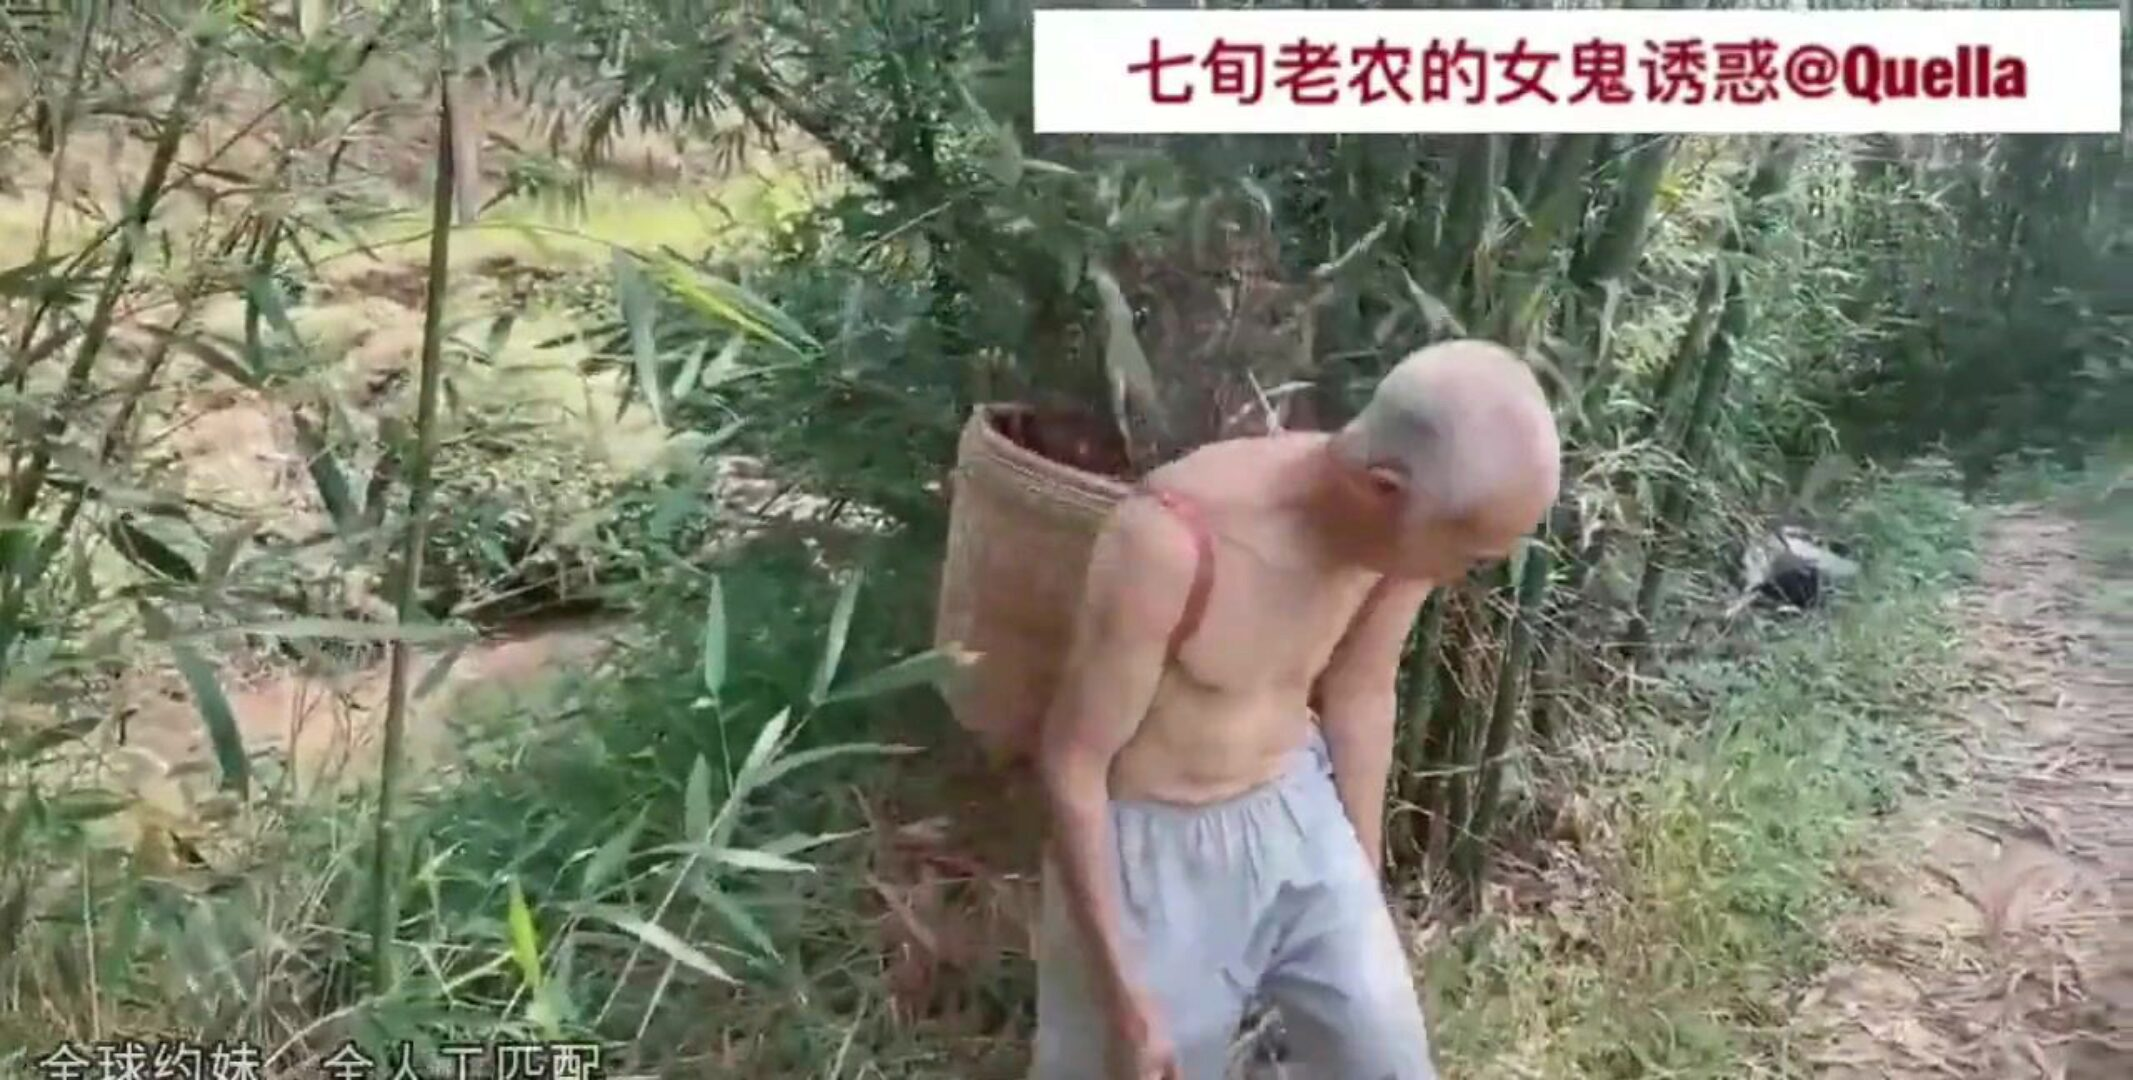 Adventure of the Elderly Chinese Av70, HD Porn 22: xHamster Watch Adventure of the Elderly Chinese Av70 episode on xHamster, the massive HD romp tube site with tons of free Asian Chinese Xxx & Old Asian pornography movies